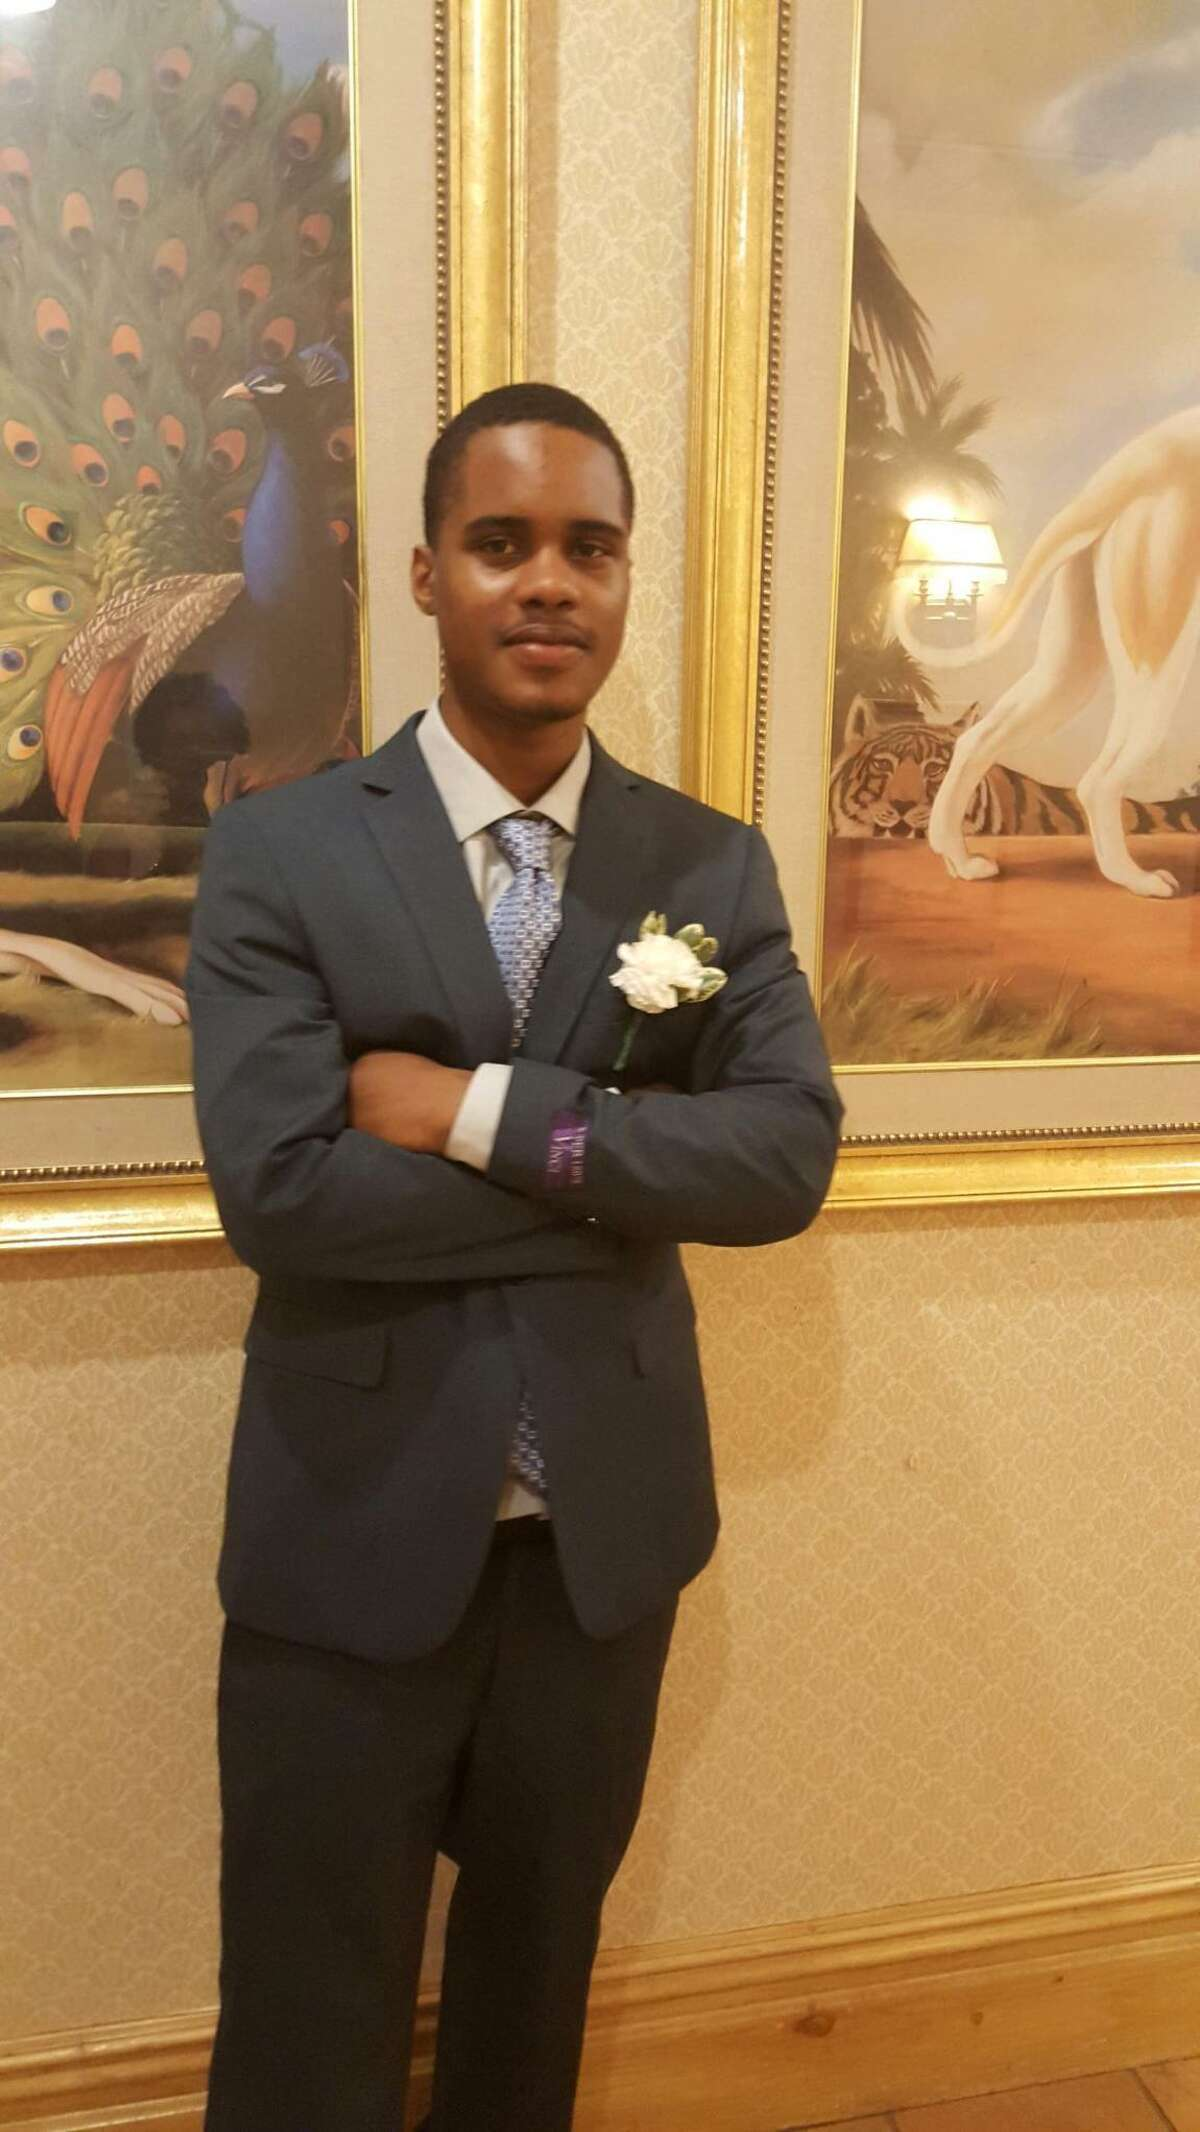 Steven Barrier, 23, of Stamford died in police custody on Wednesday morning Oct. 23 on his birthday.